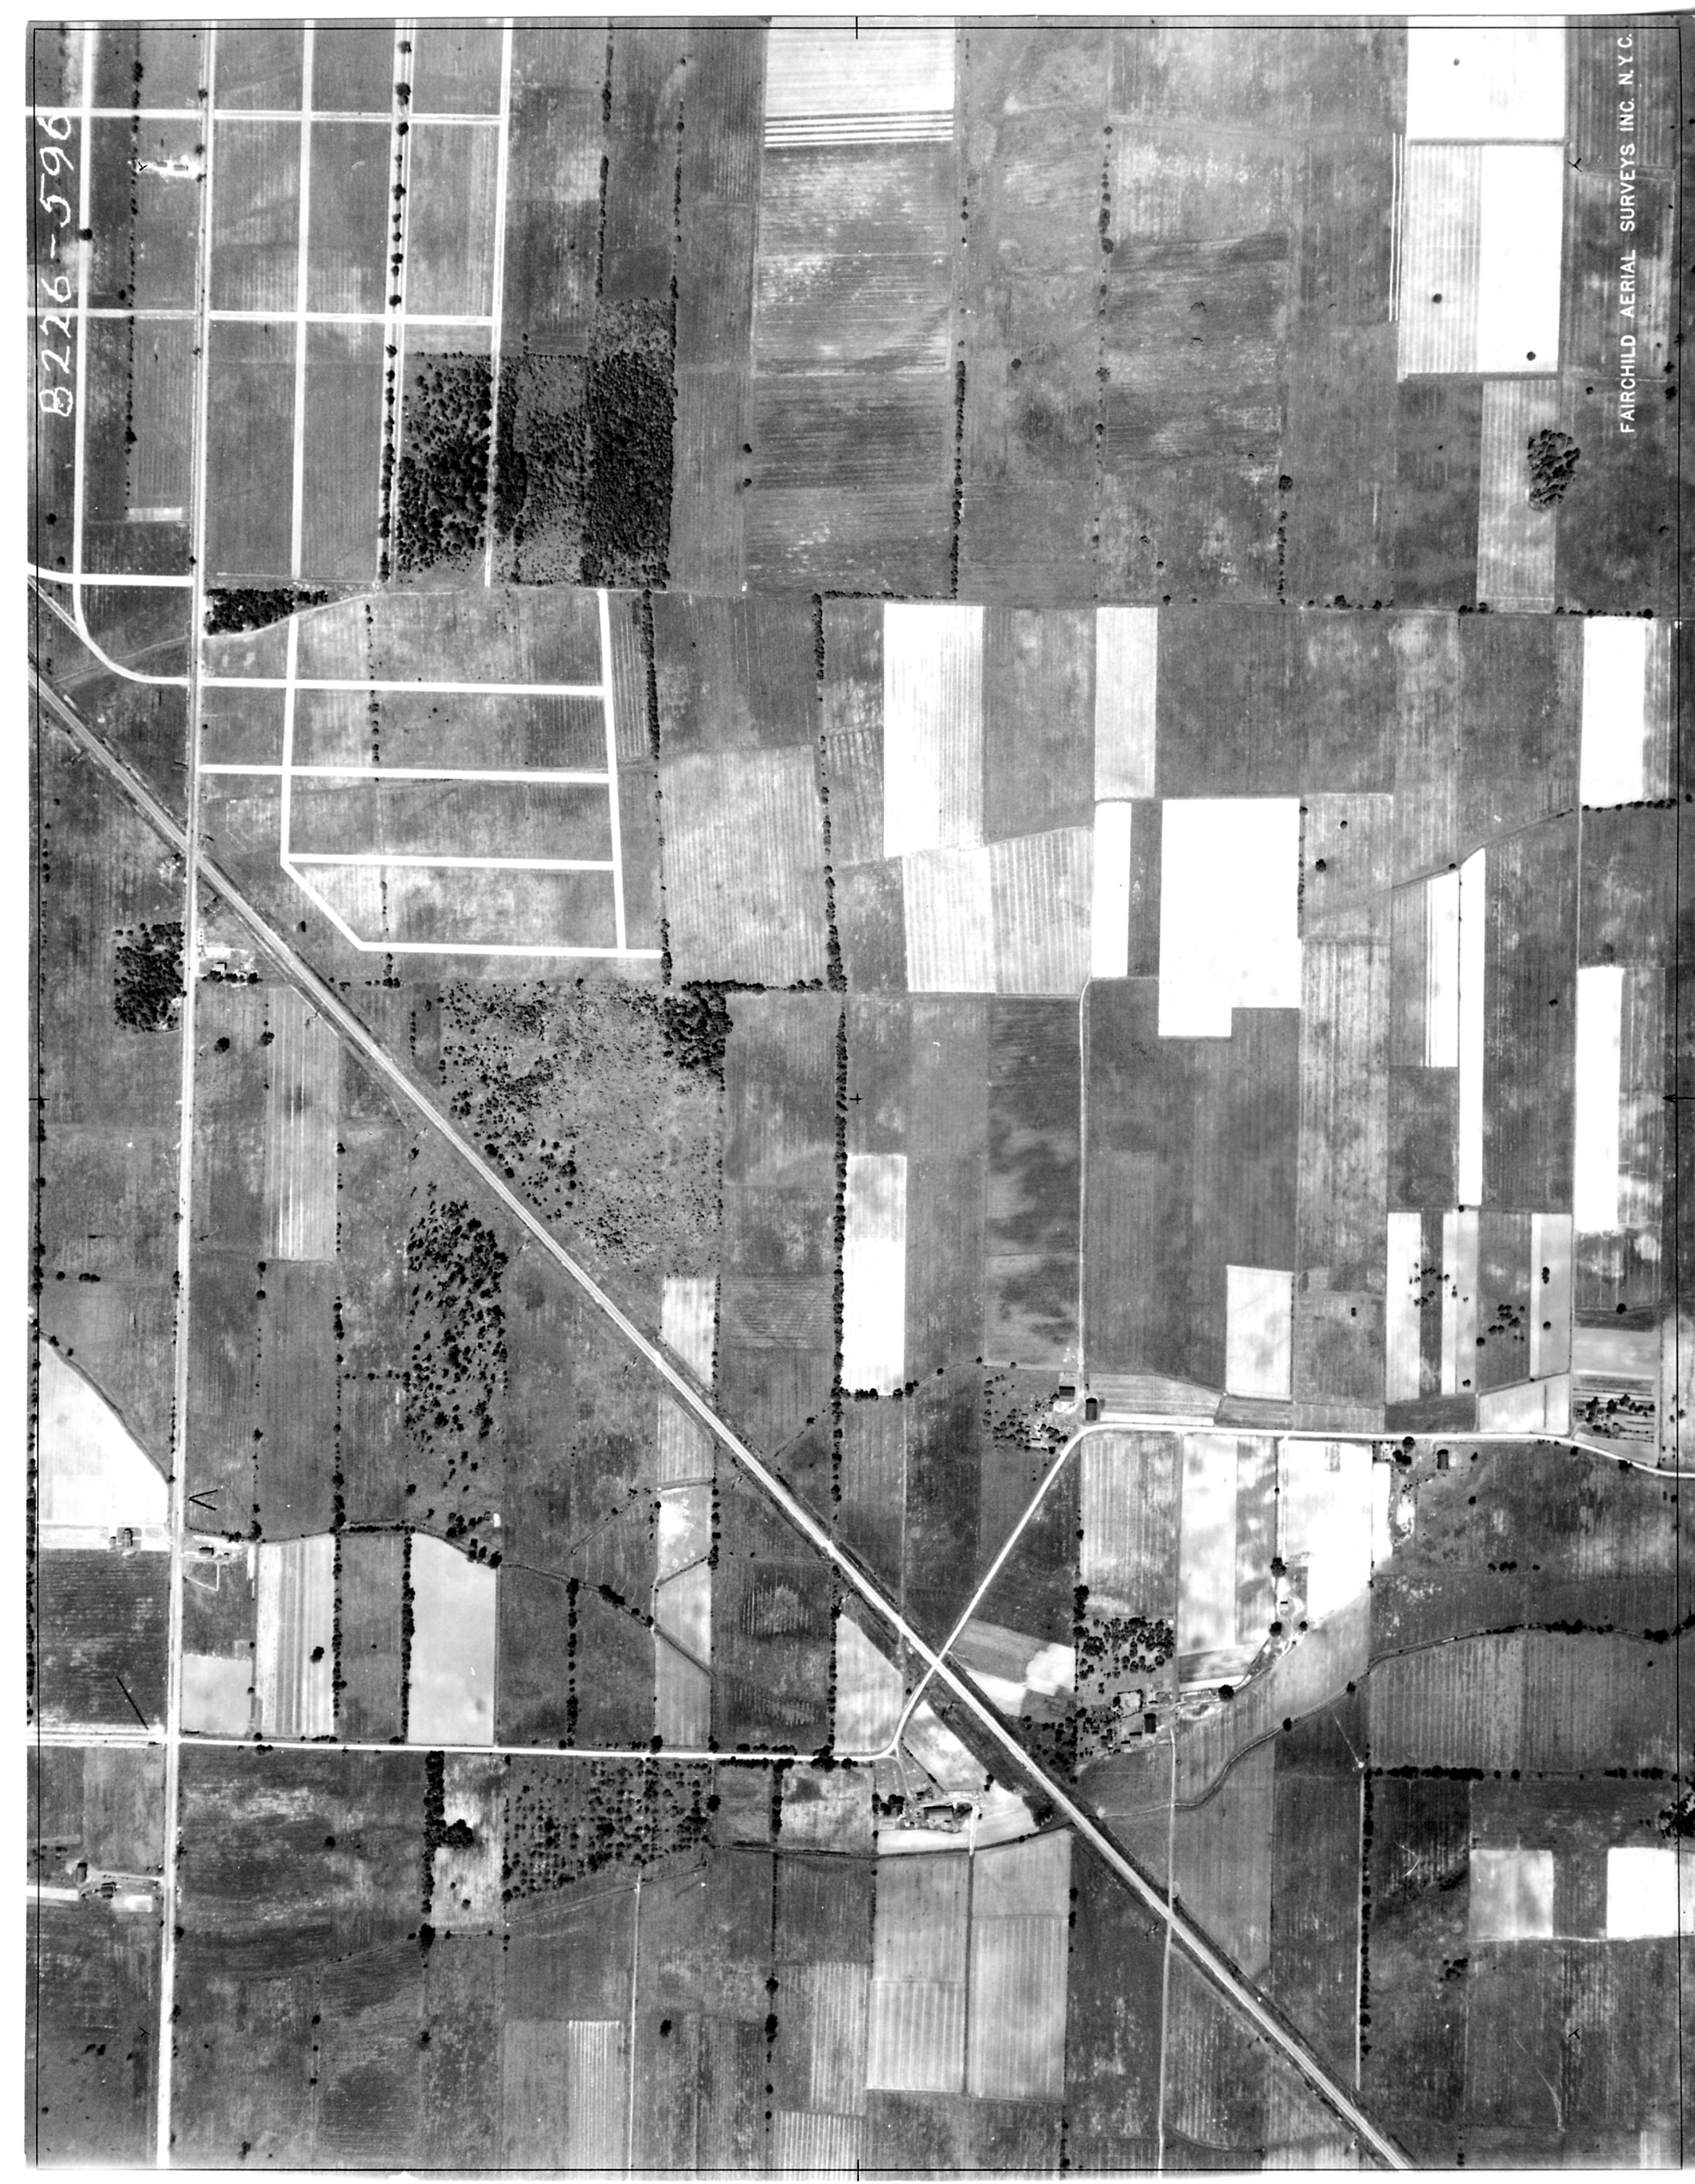 1927 Aerial Photo Showing UB North